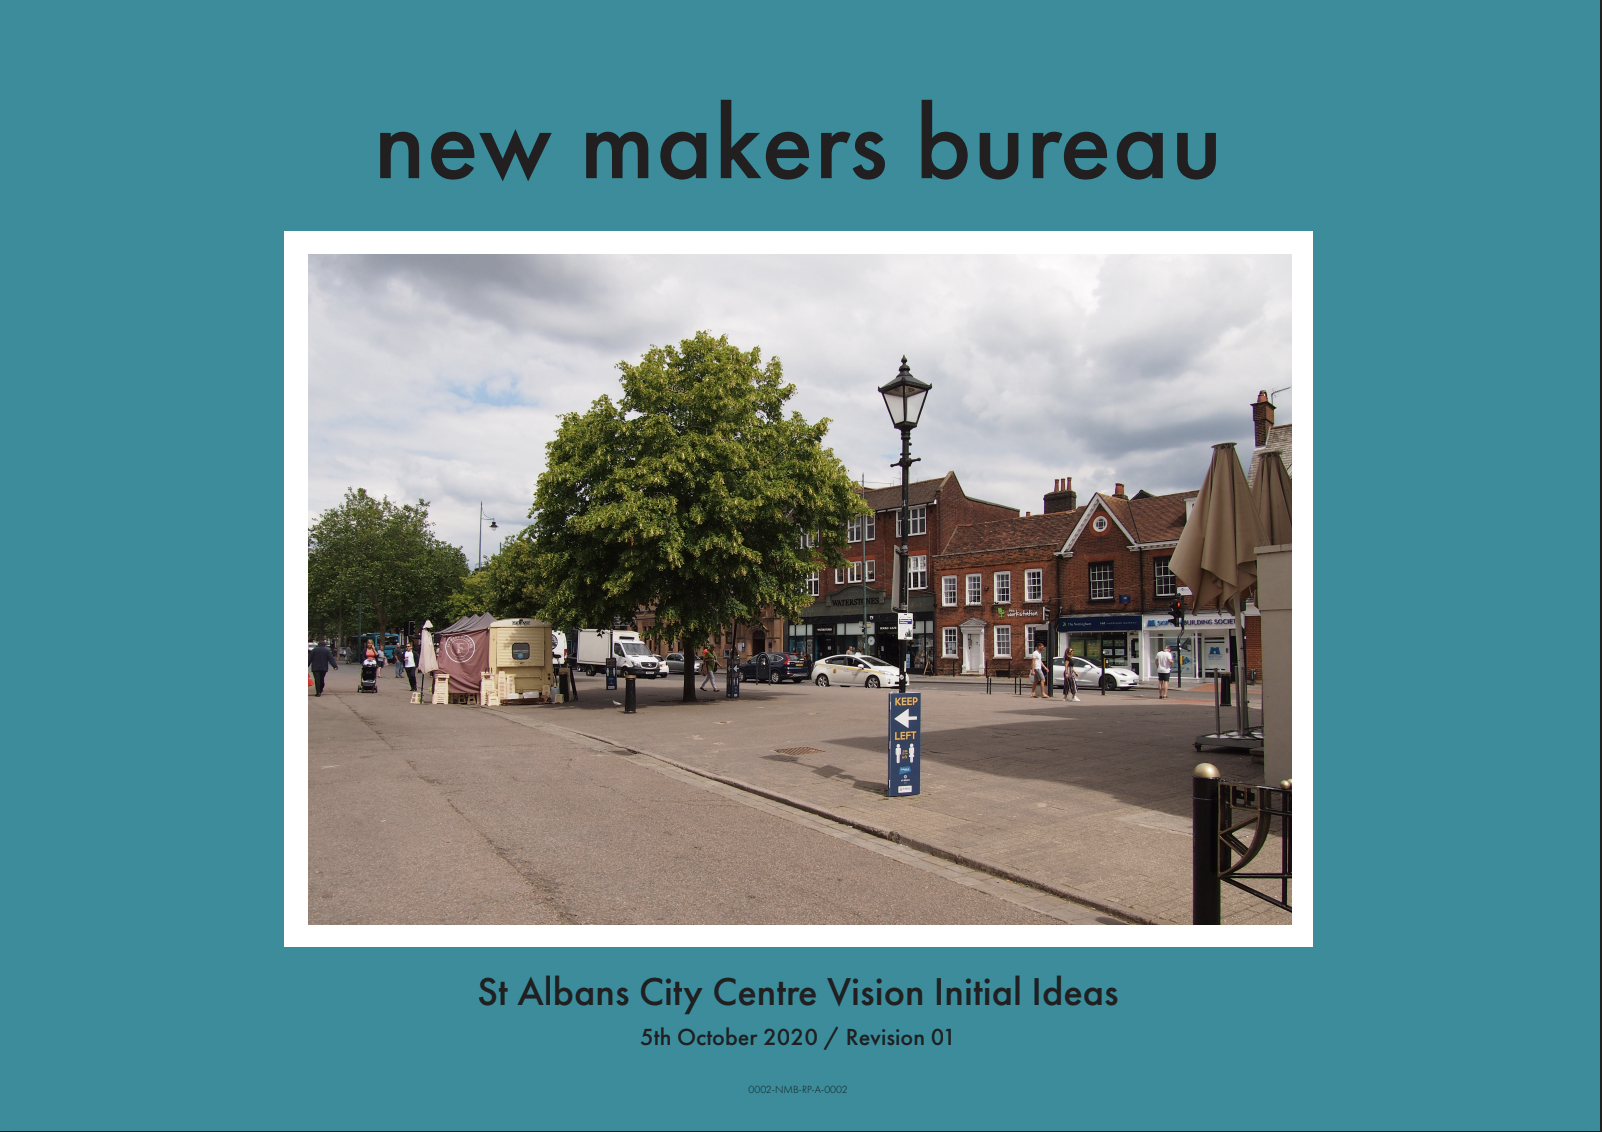 Shaping the future of St Albans City Centre